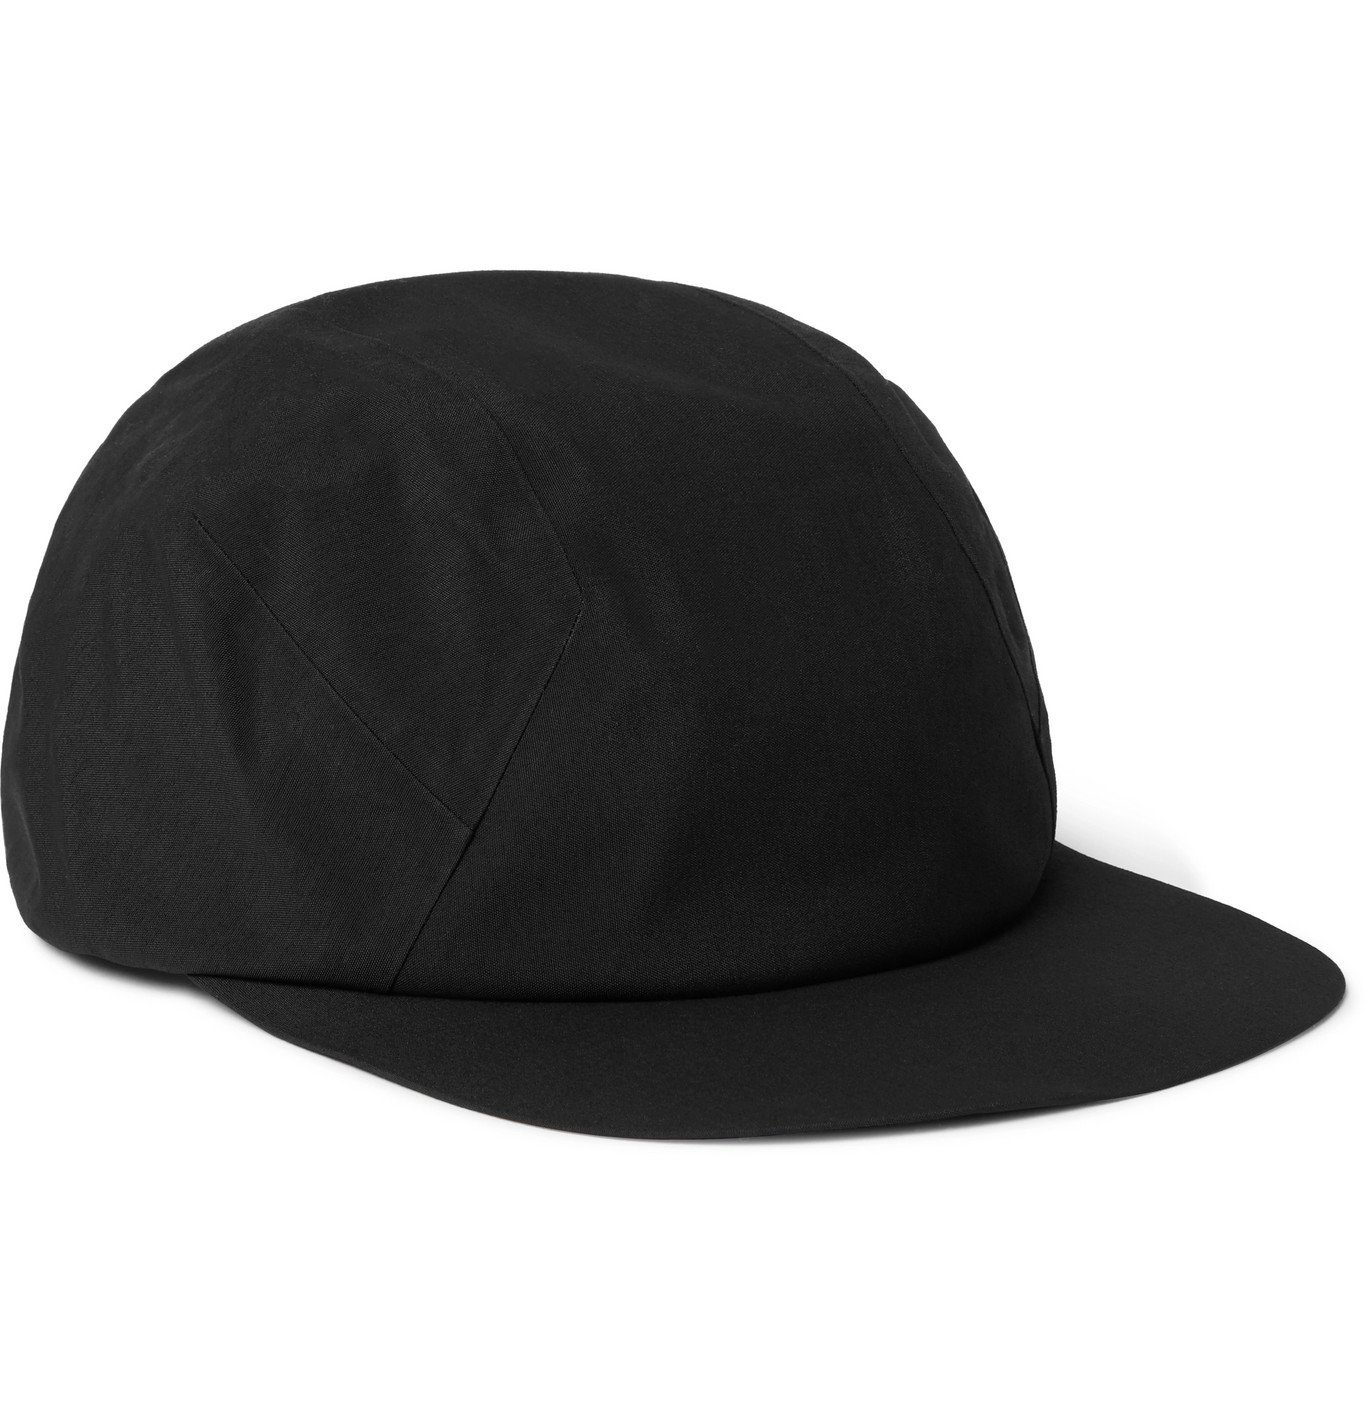 Photo: Veilance - Stealth GORE-TEX PRO Baseball Cap - Black